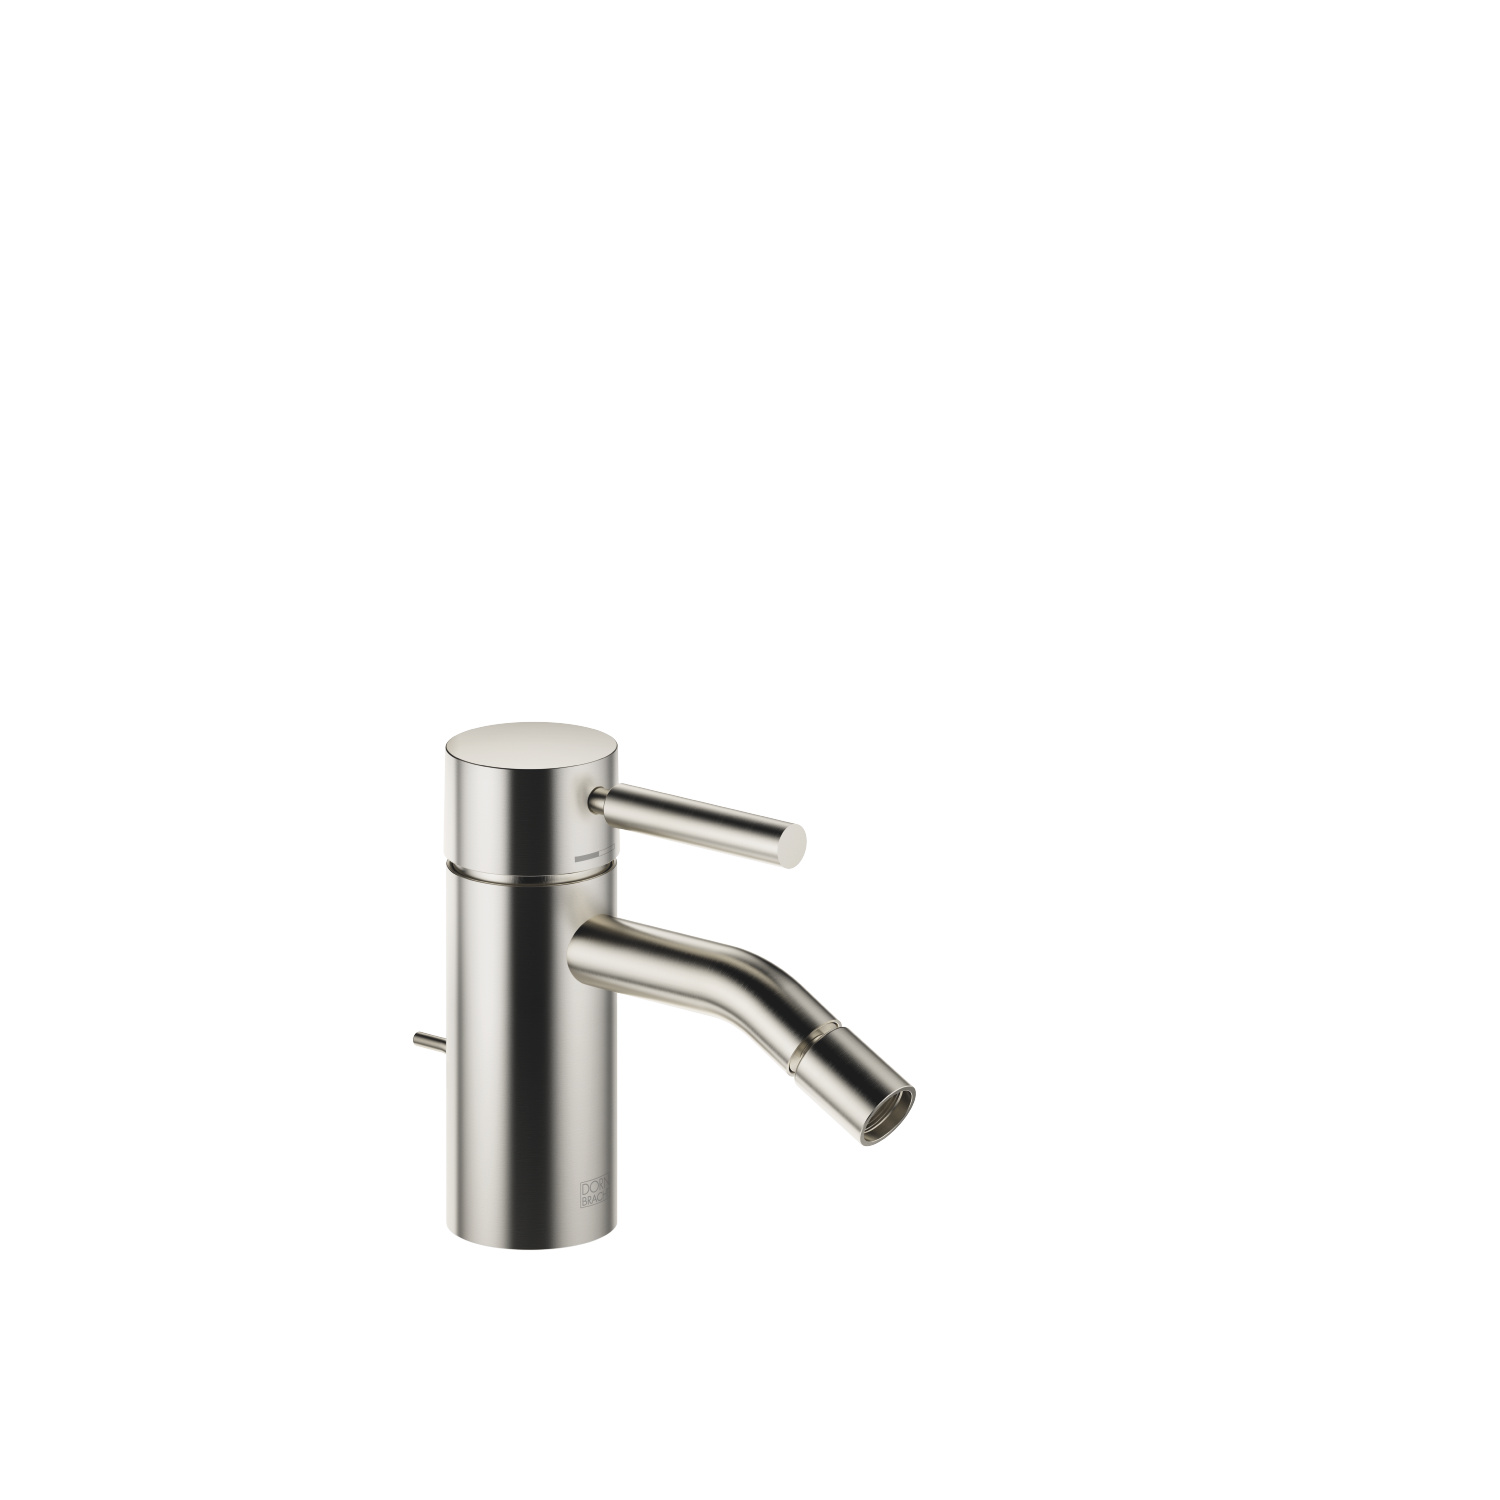 Single-lever bidet mixer with pop-up waste - platinum matt - 33 600 660-06